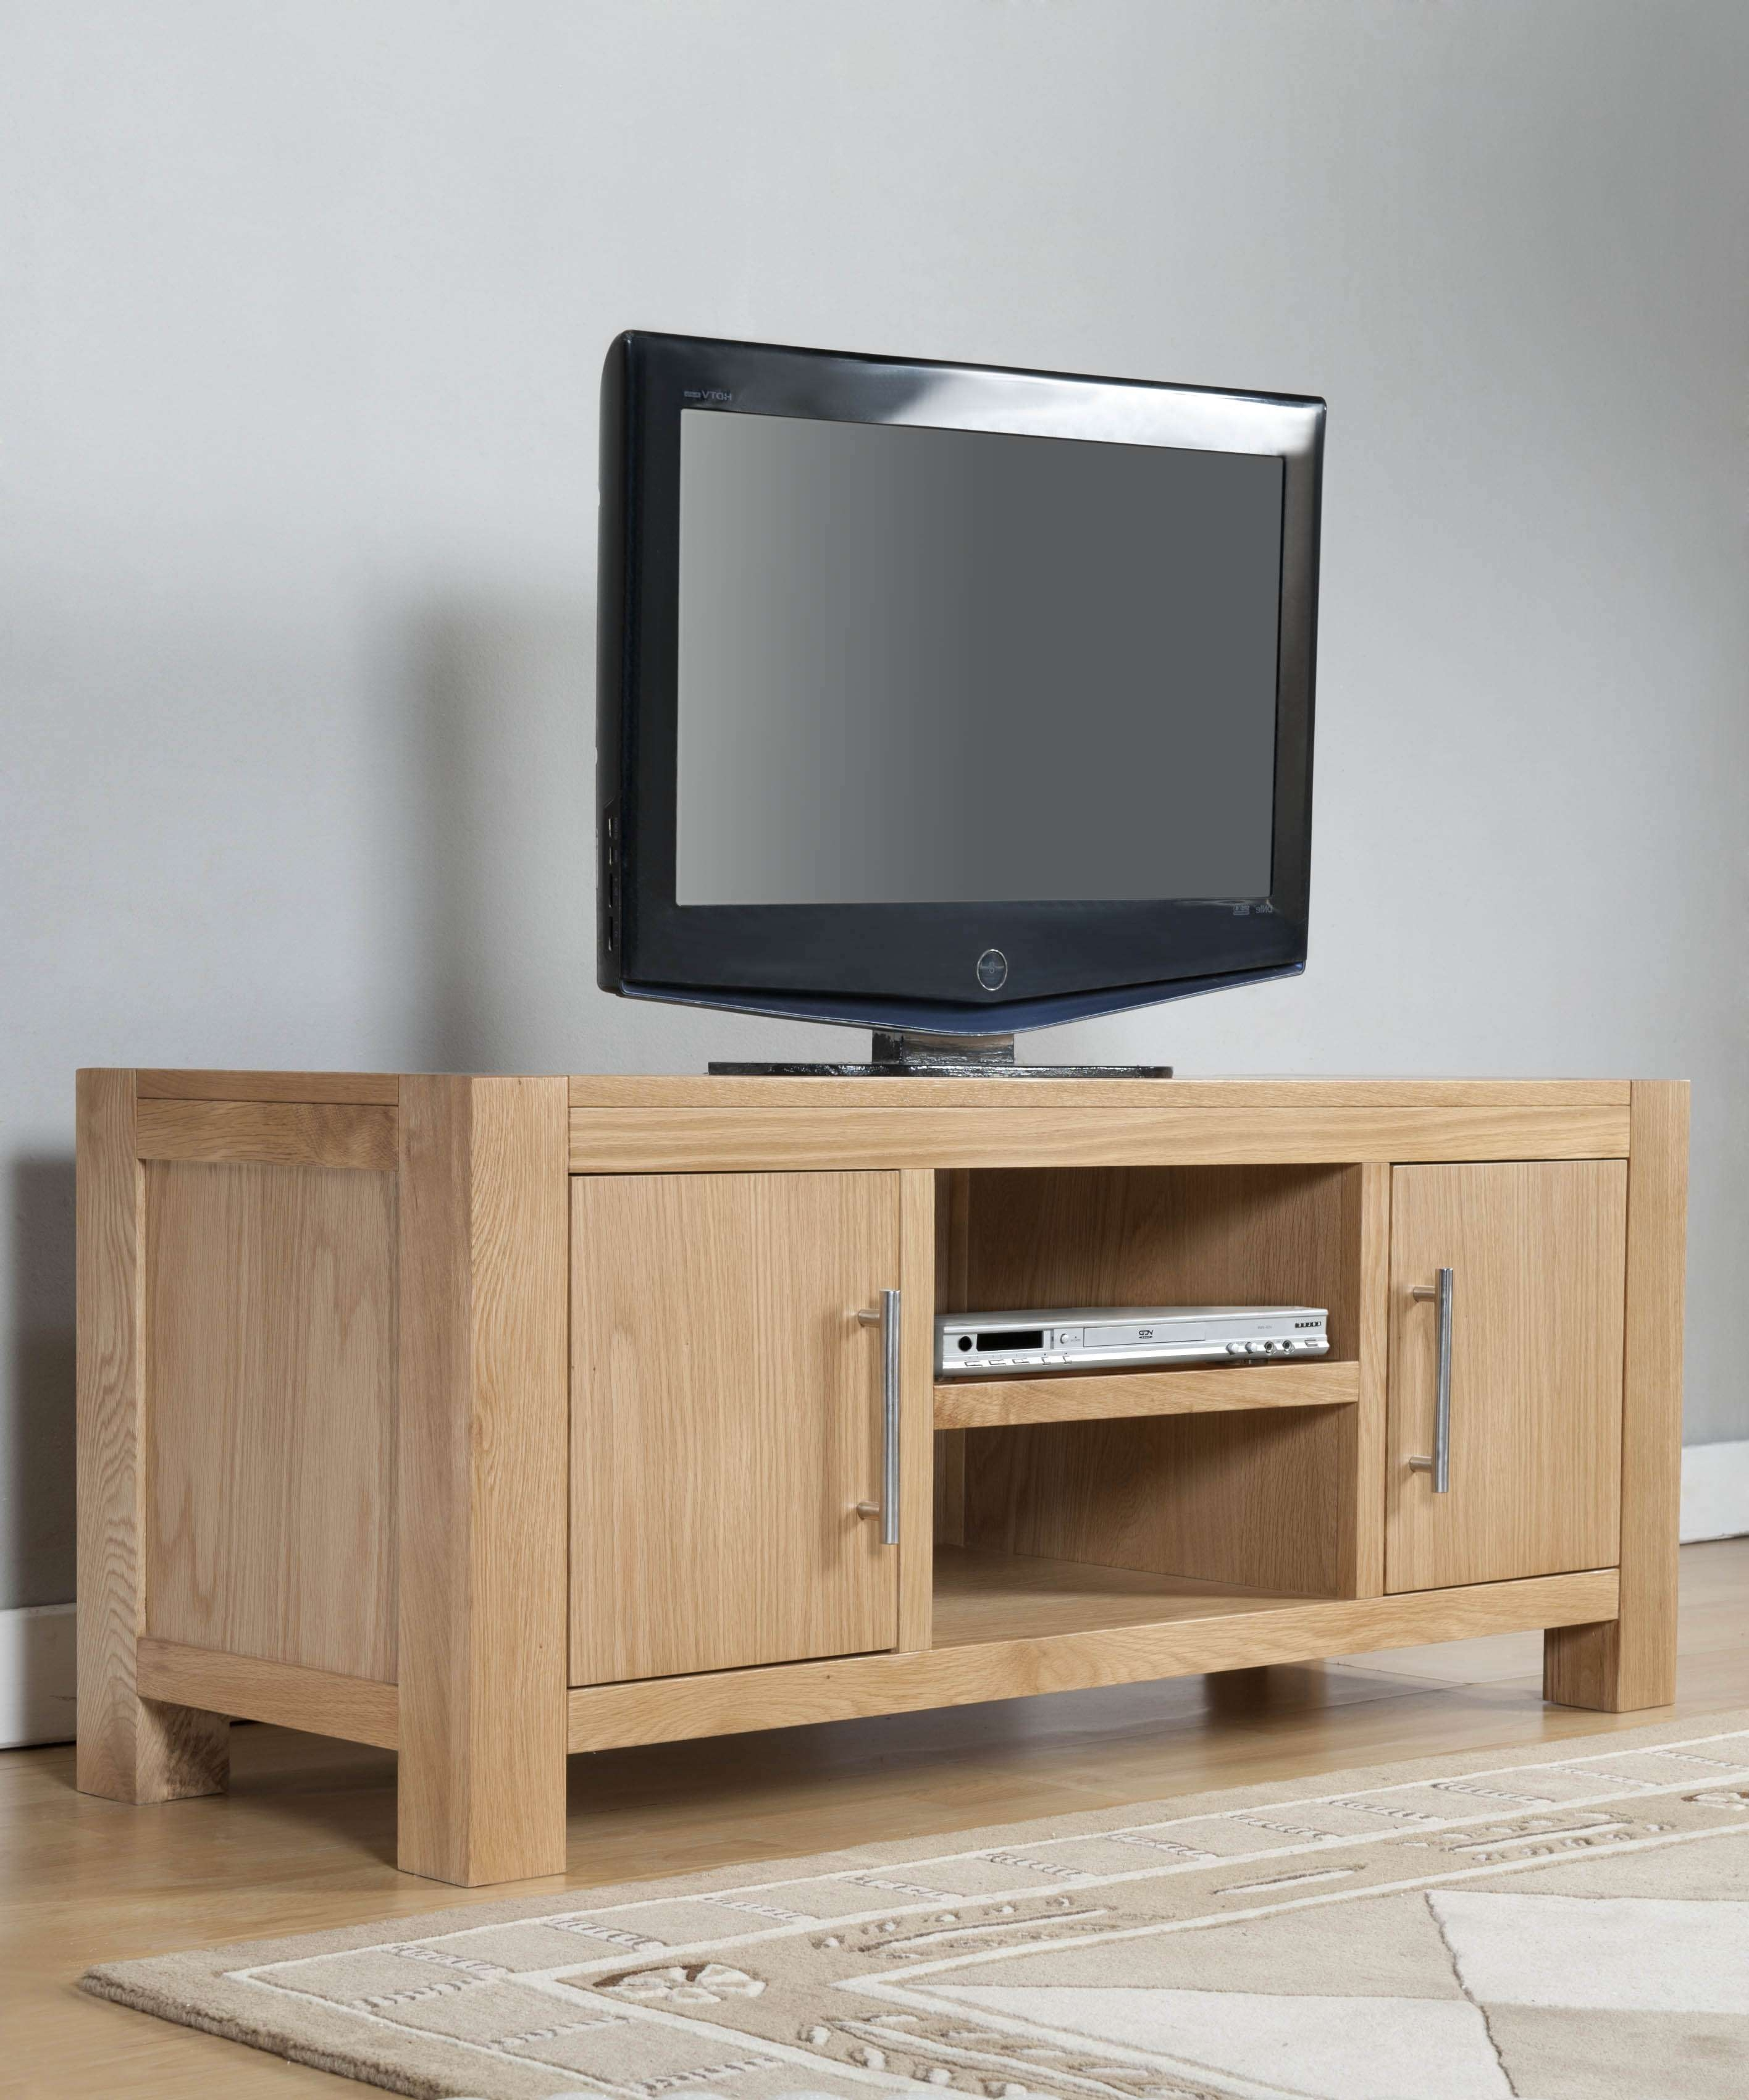 Milano Oak 2 Door Tv Stand With Shelf | Oak Furniture Solutions With Oak Tv Cabinets With Doors (View 16 of 20)